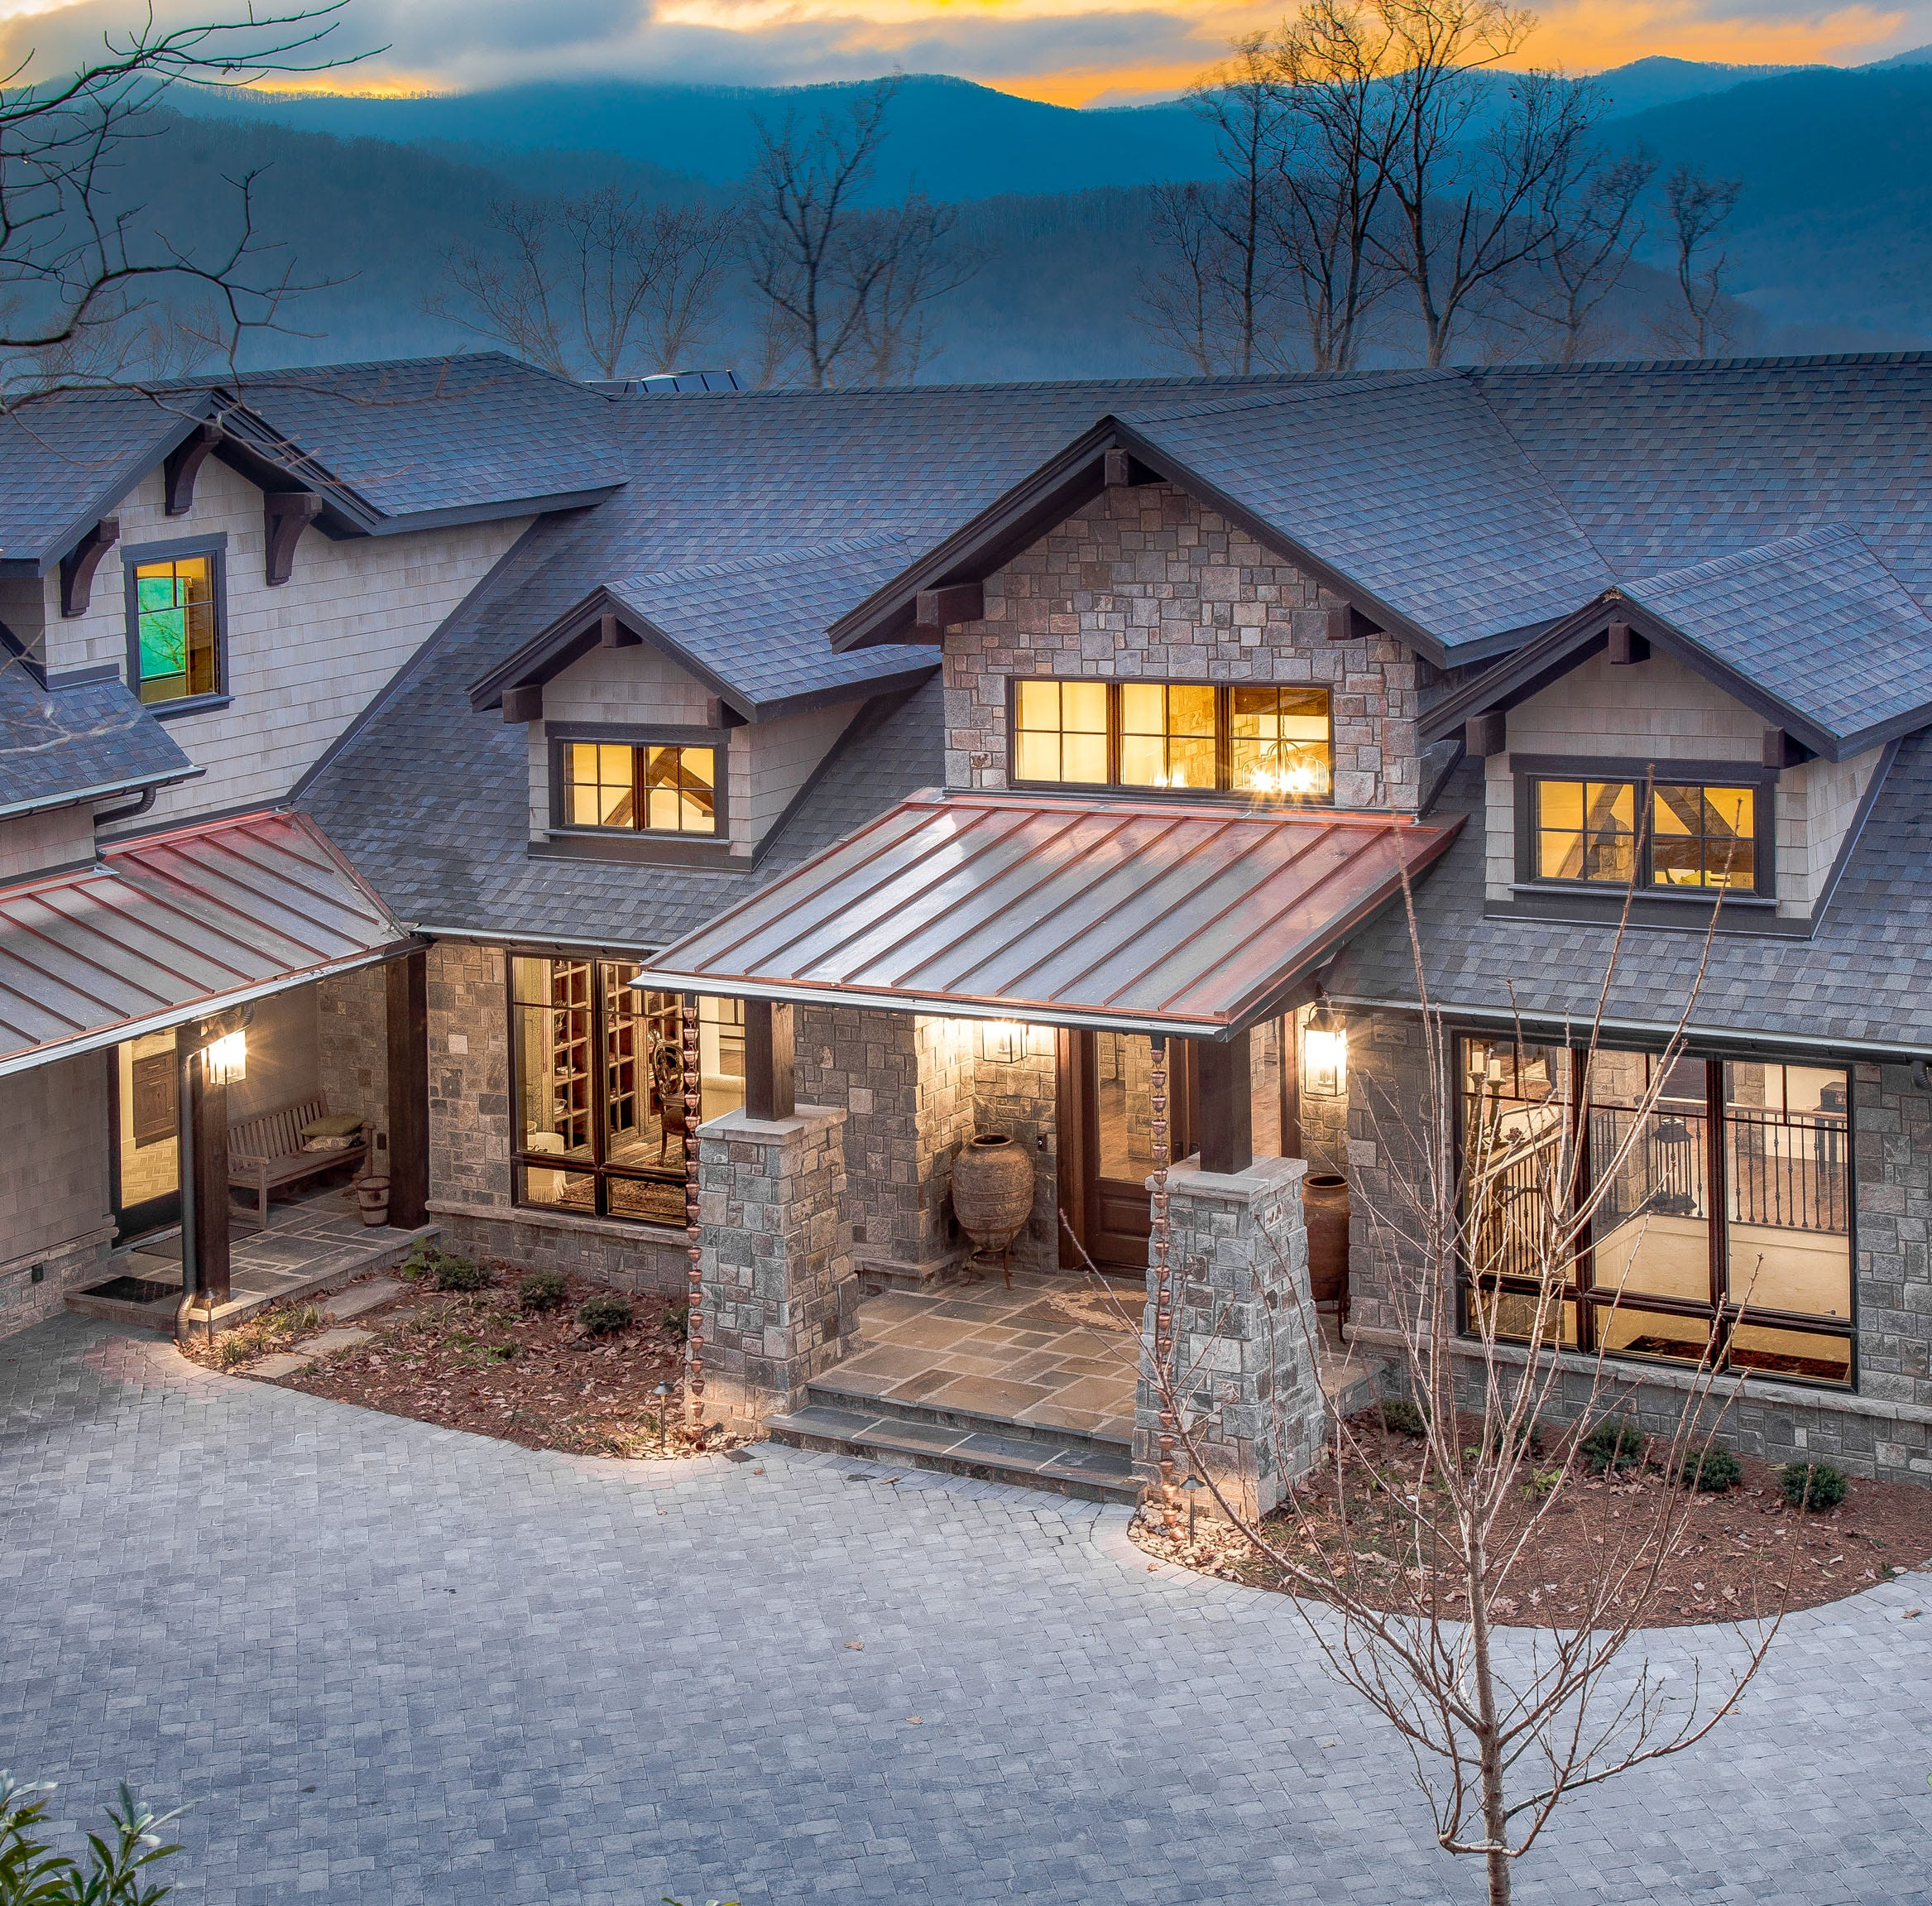 5-bedroom Asheville area home sells for $3.5M, most expensive sale of 2019